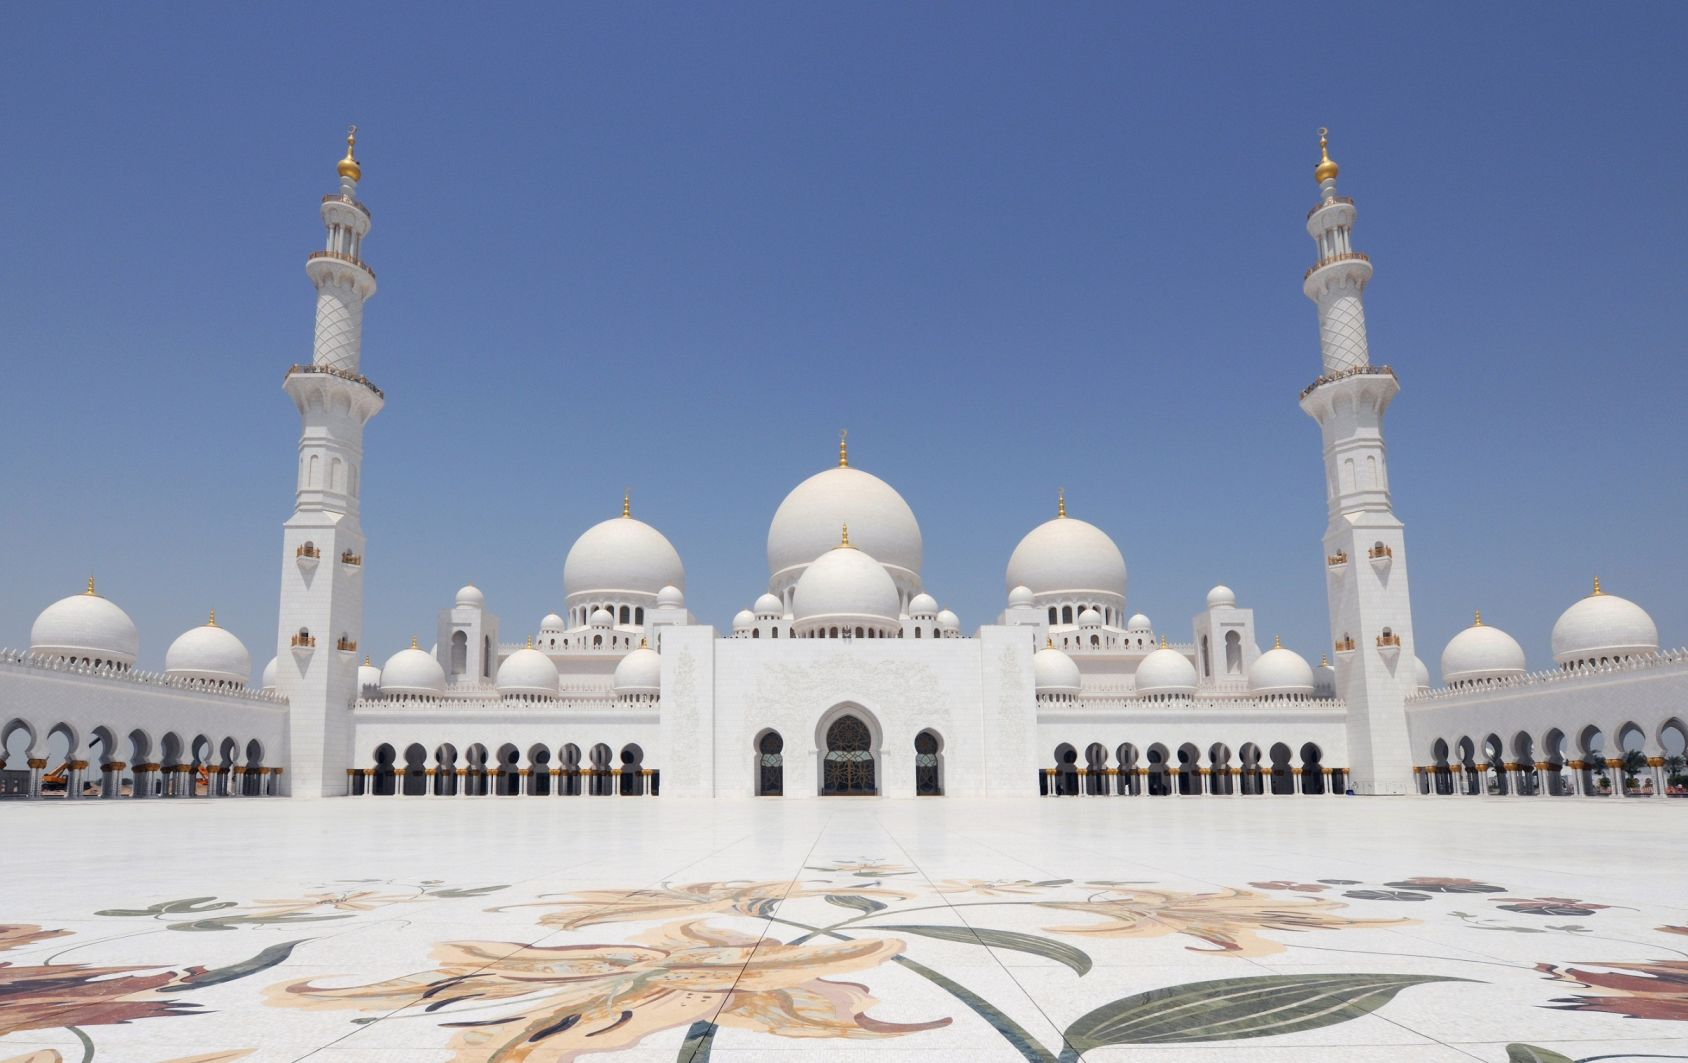 Brimming with intriguing culture, breath-taking architecture, and top-notch luxury, Abu Dhabi keeps drawing travelers from across the globe into the heart of the Emirates.